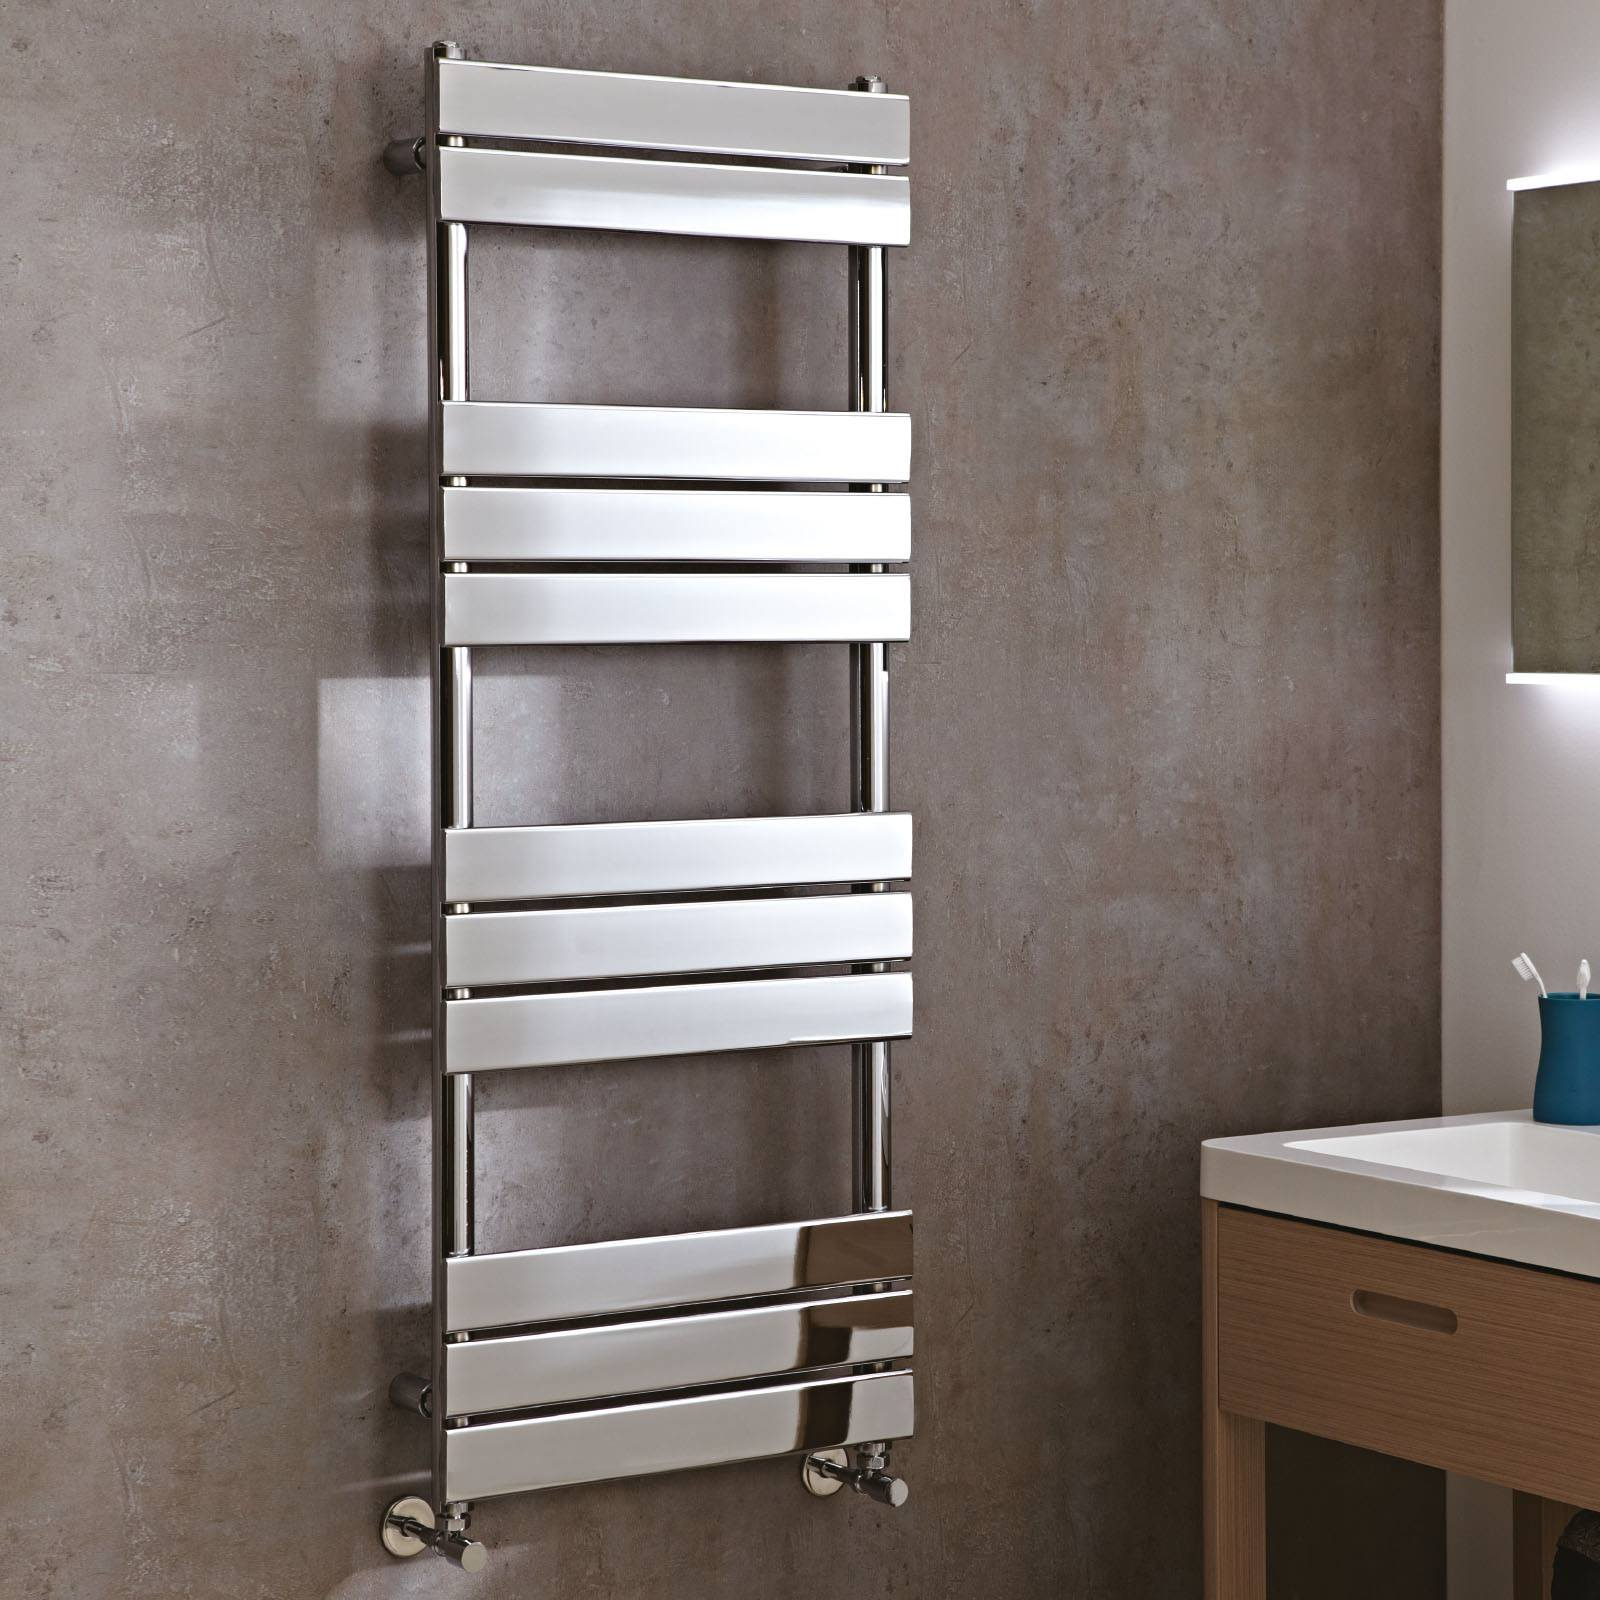 where to buy kitchen faucet sorento designer flat panel towel rail 500mm x 950mm 26194